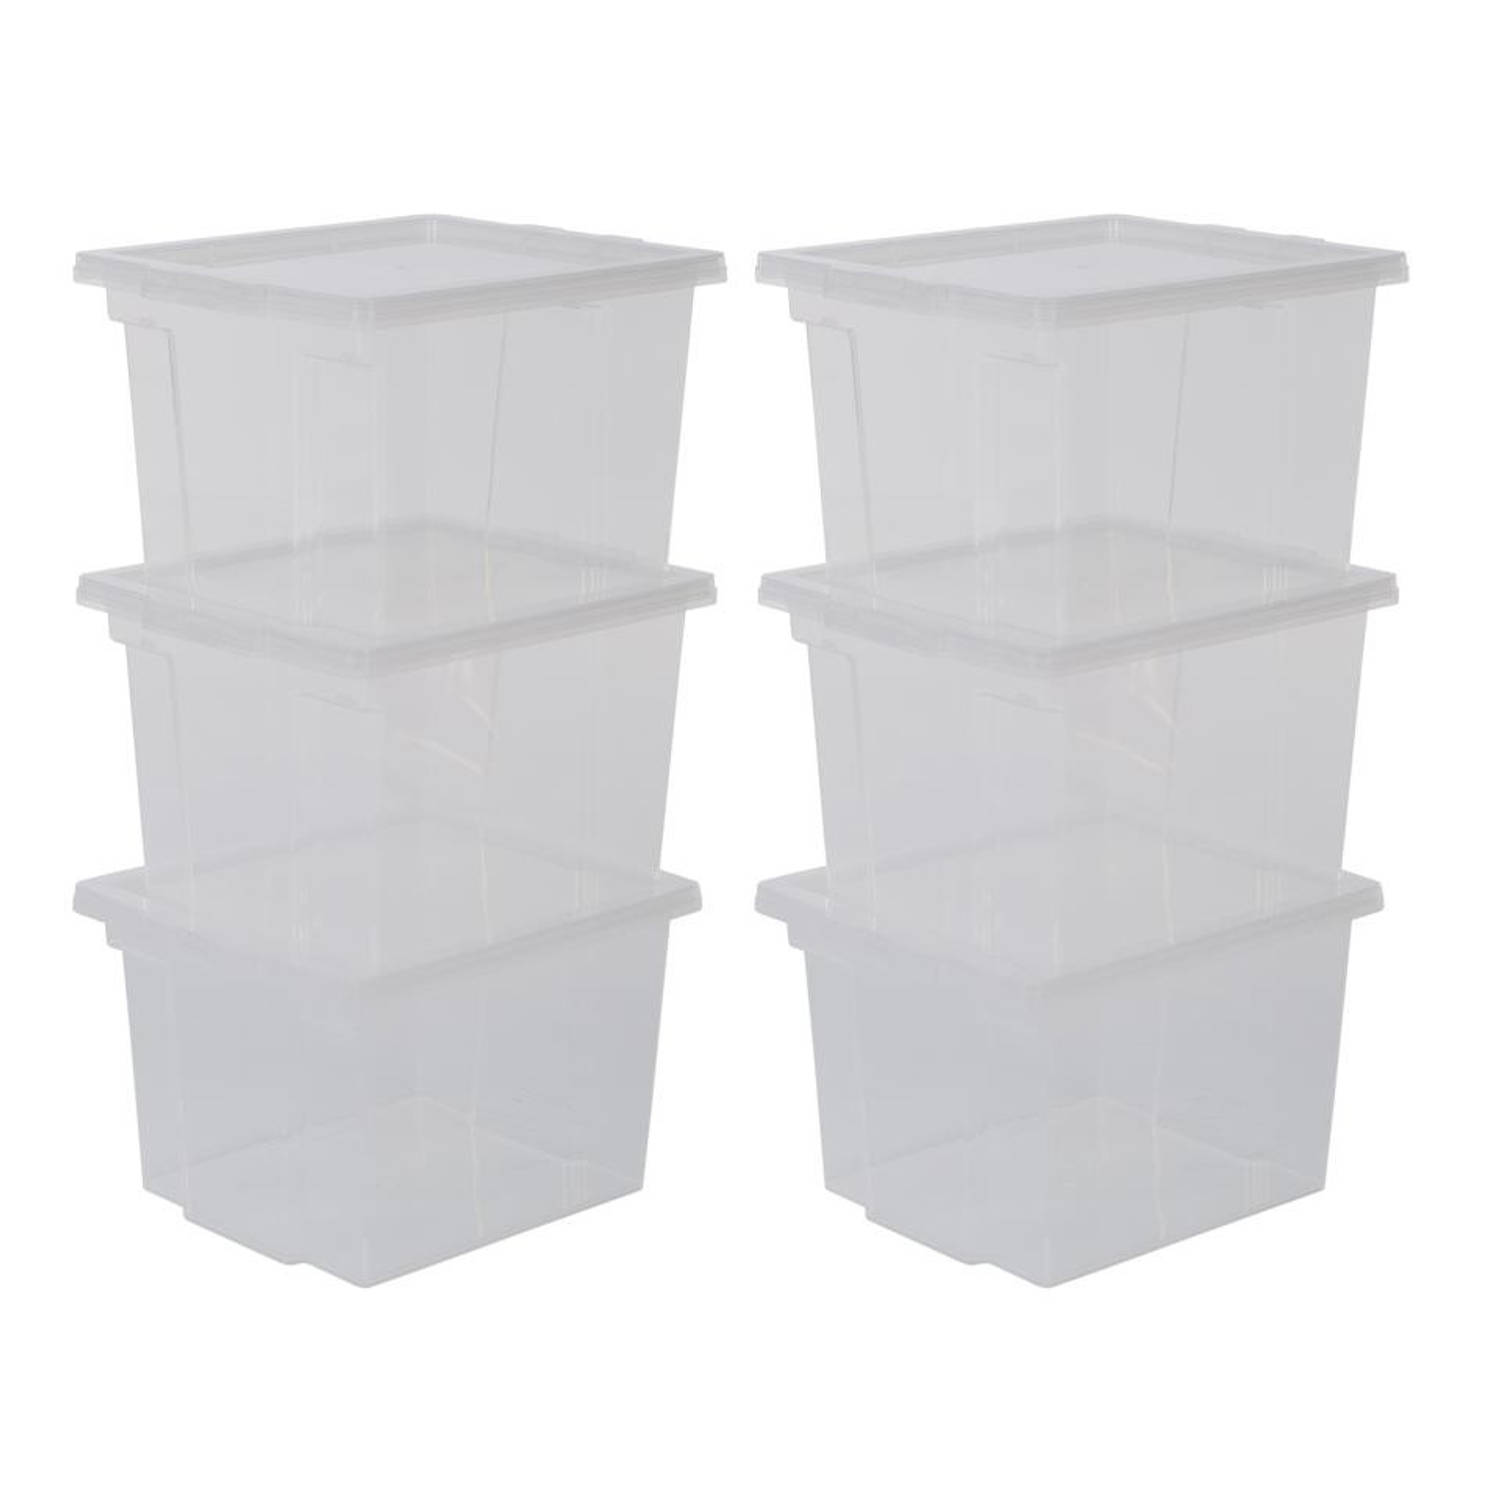 Iris Storage Box opbergbox - 10 liter - transparant - set van 6